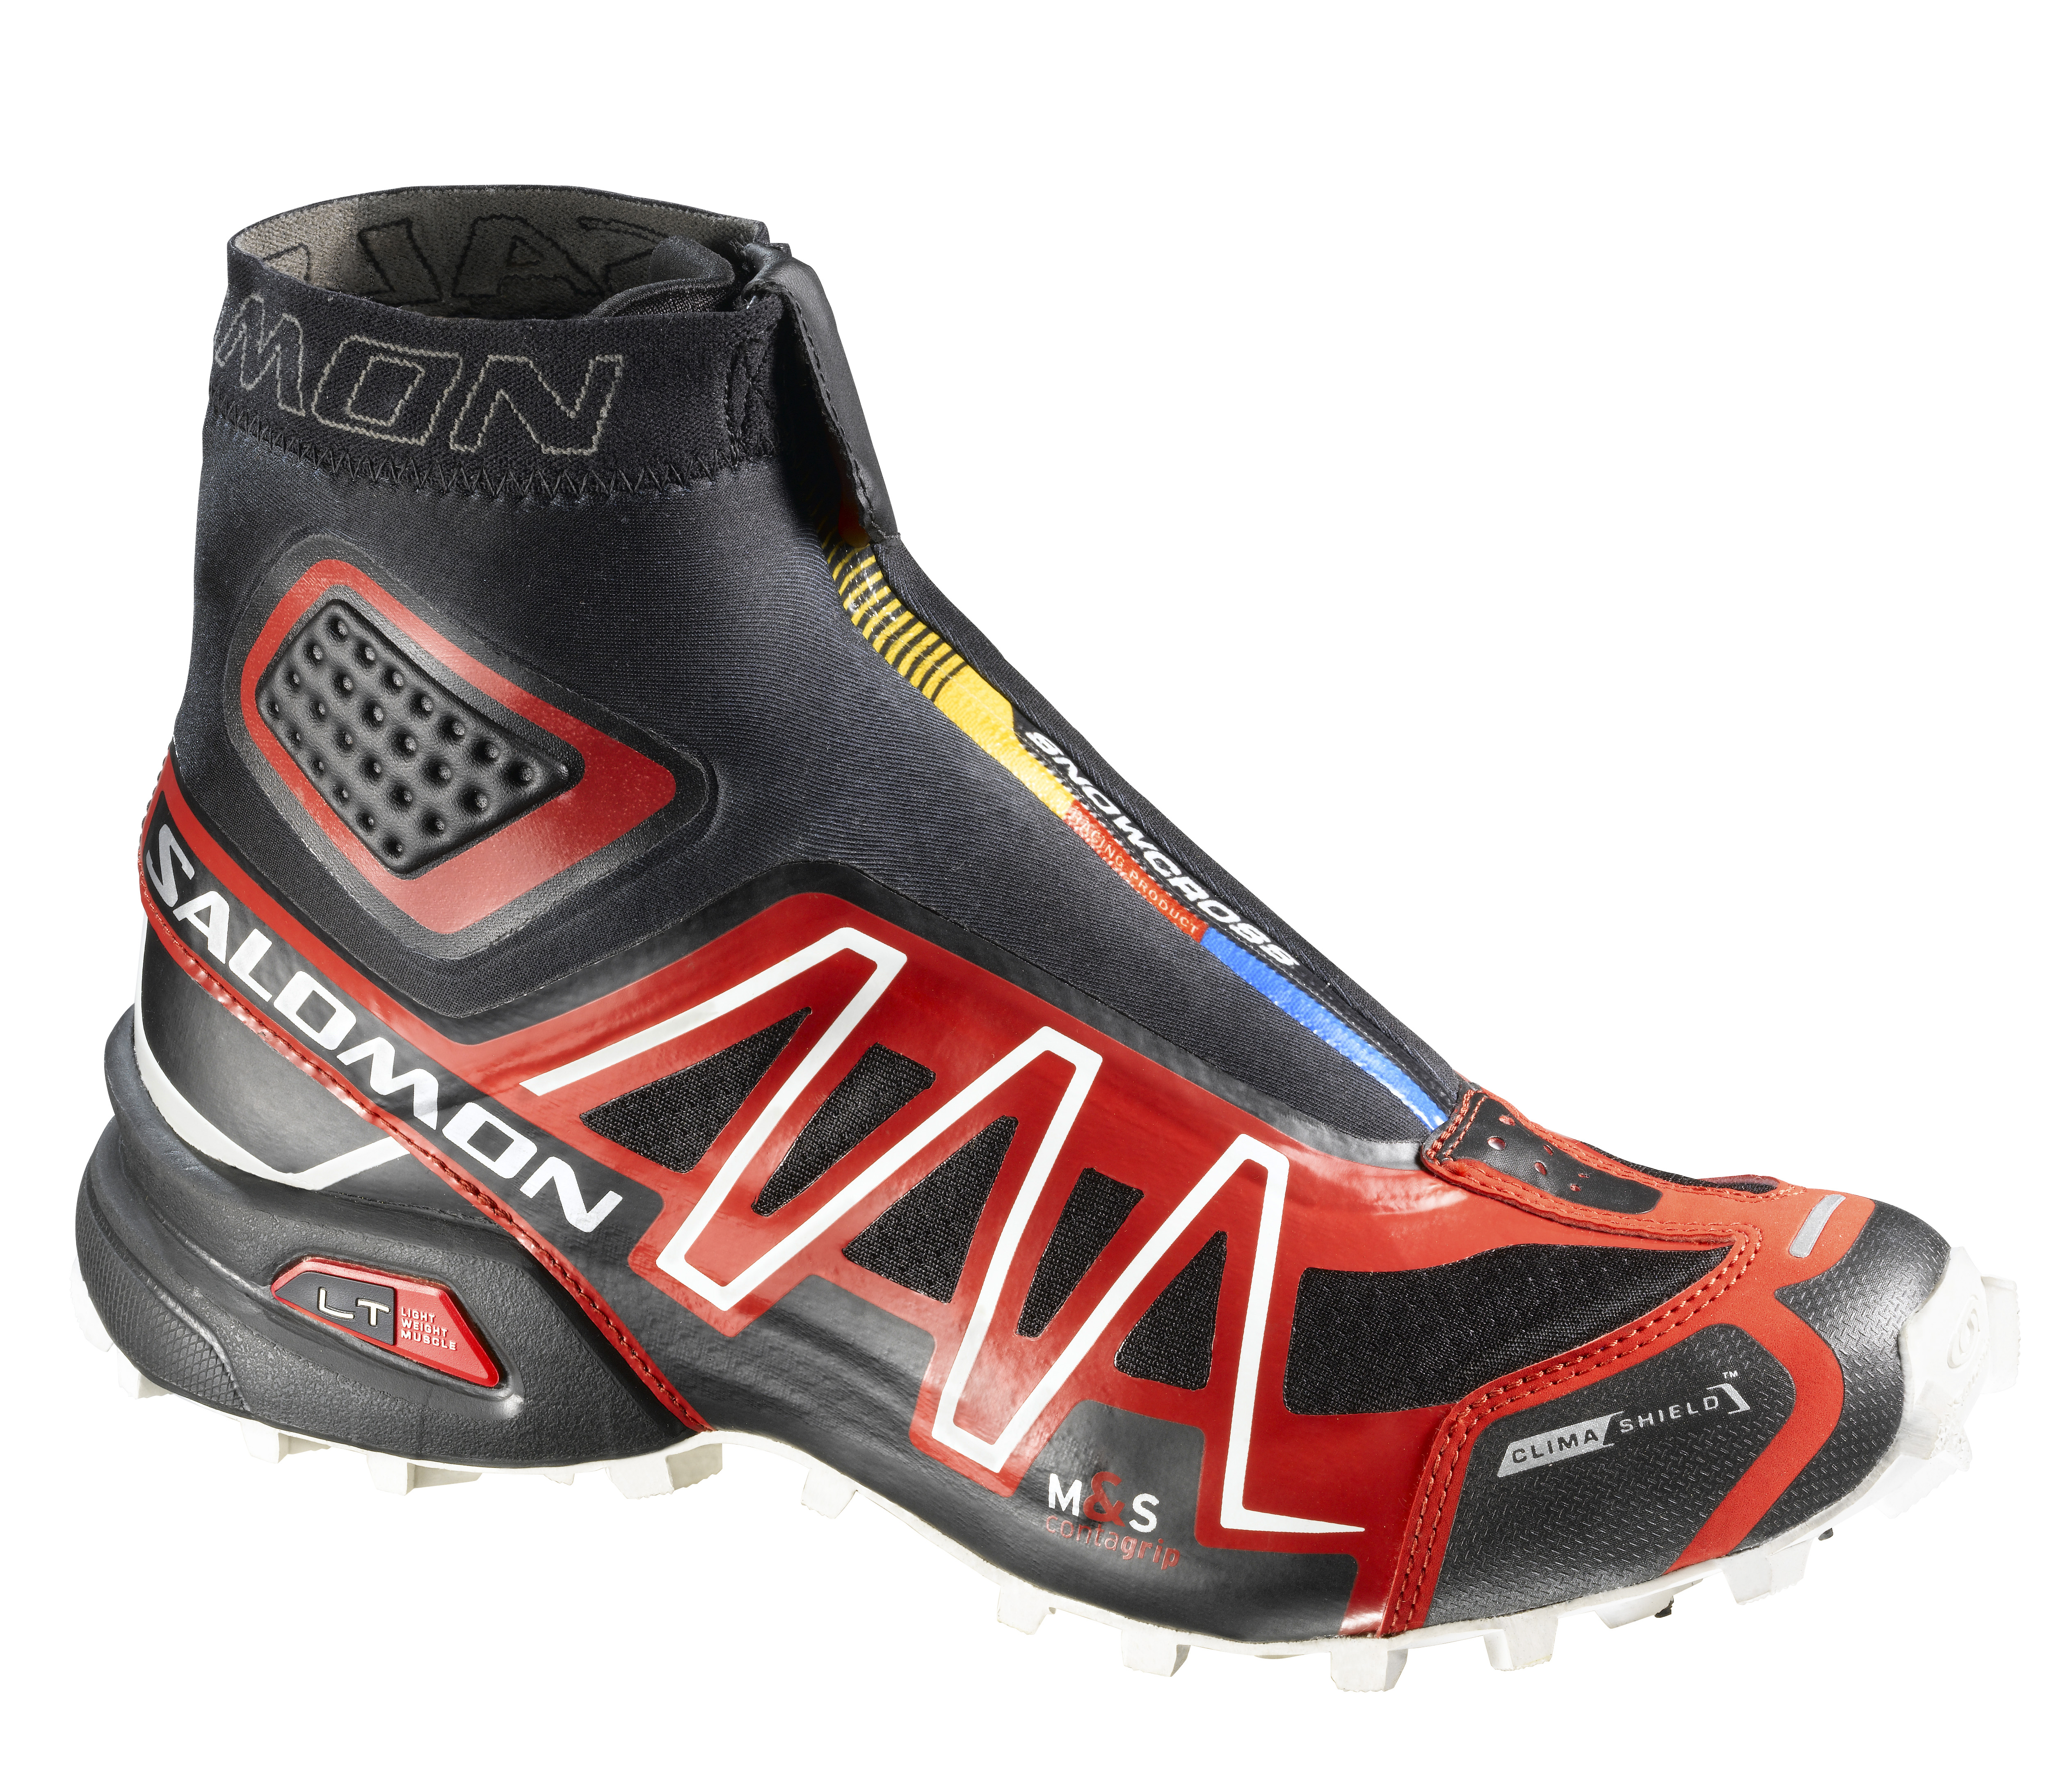 SALOMON SNOWCROSS CS BLACK/BRIGHT RED/CANE